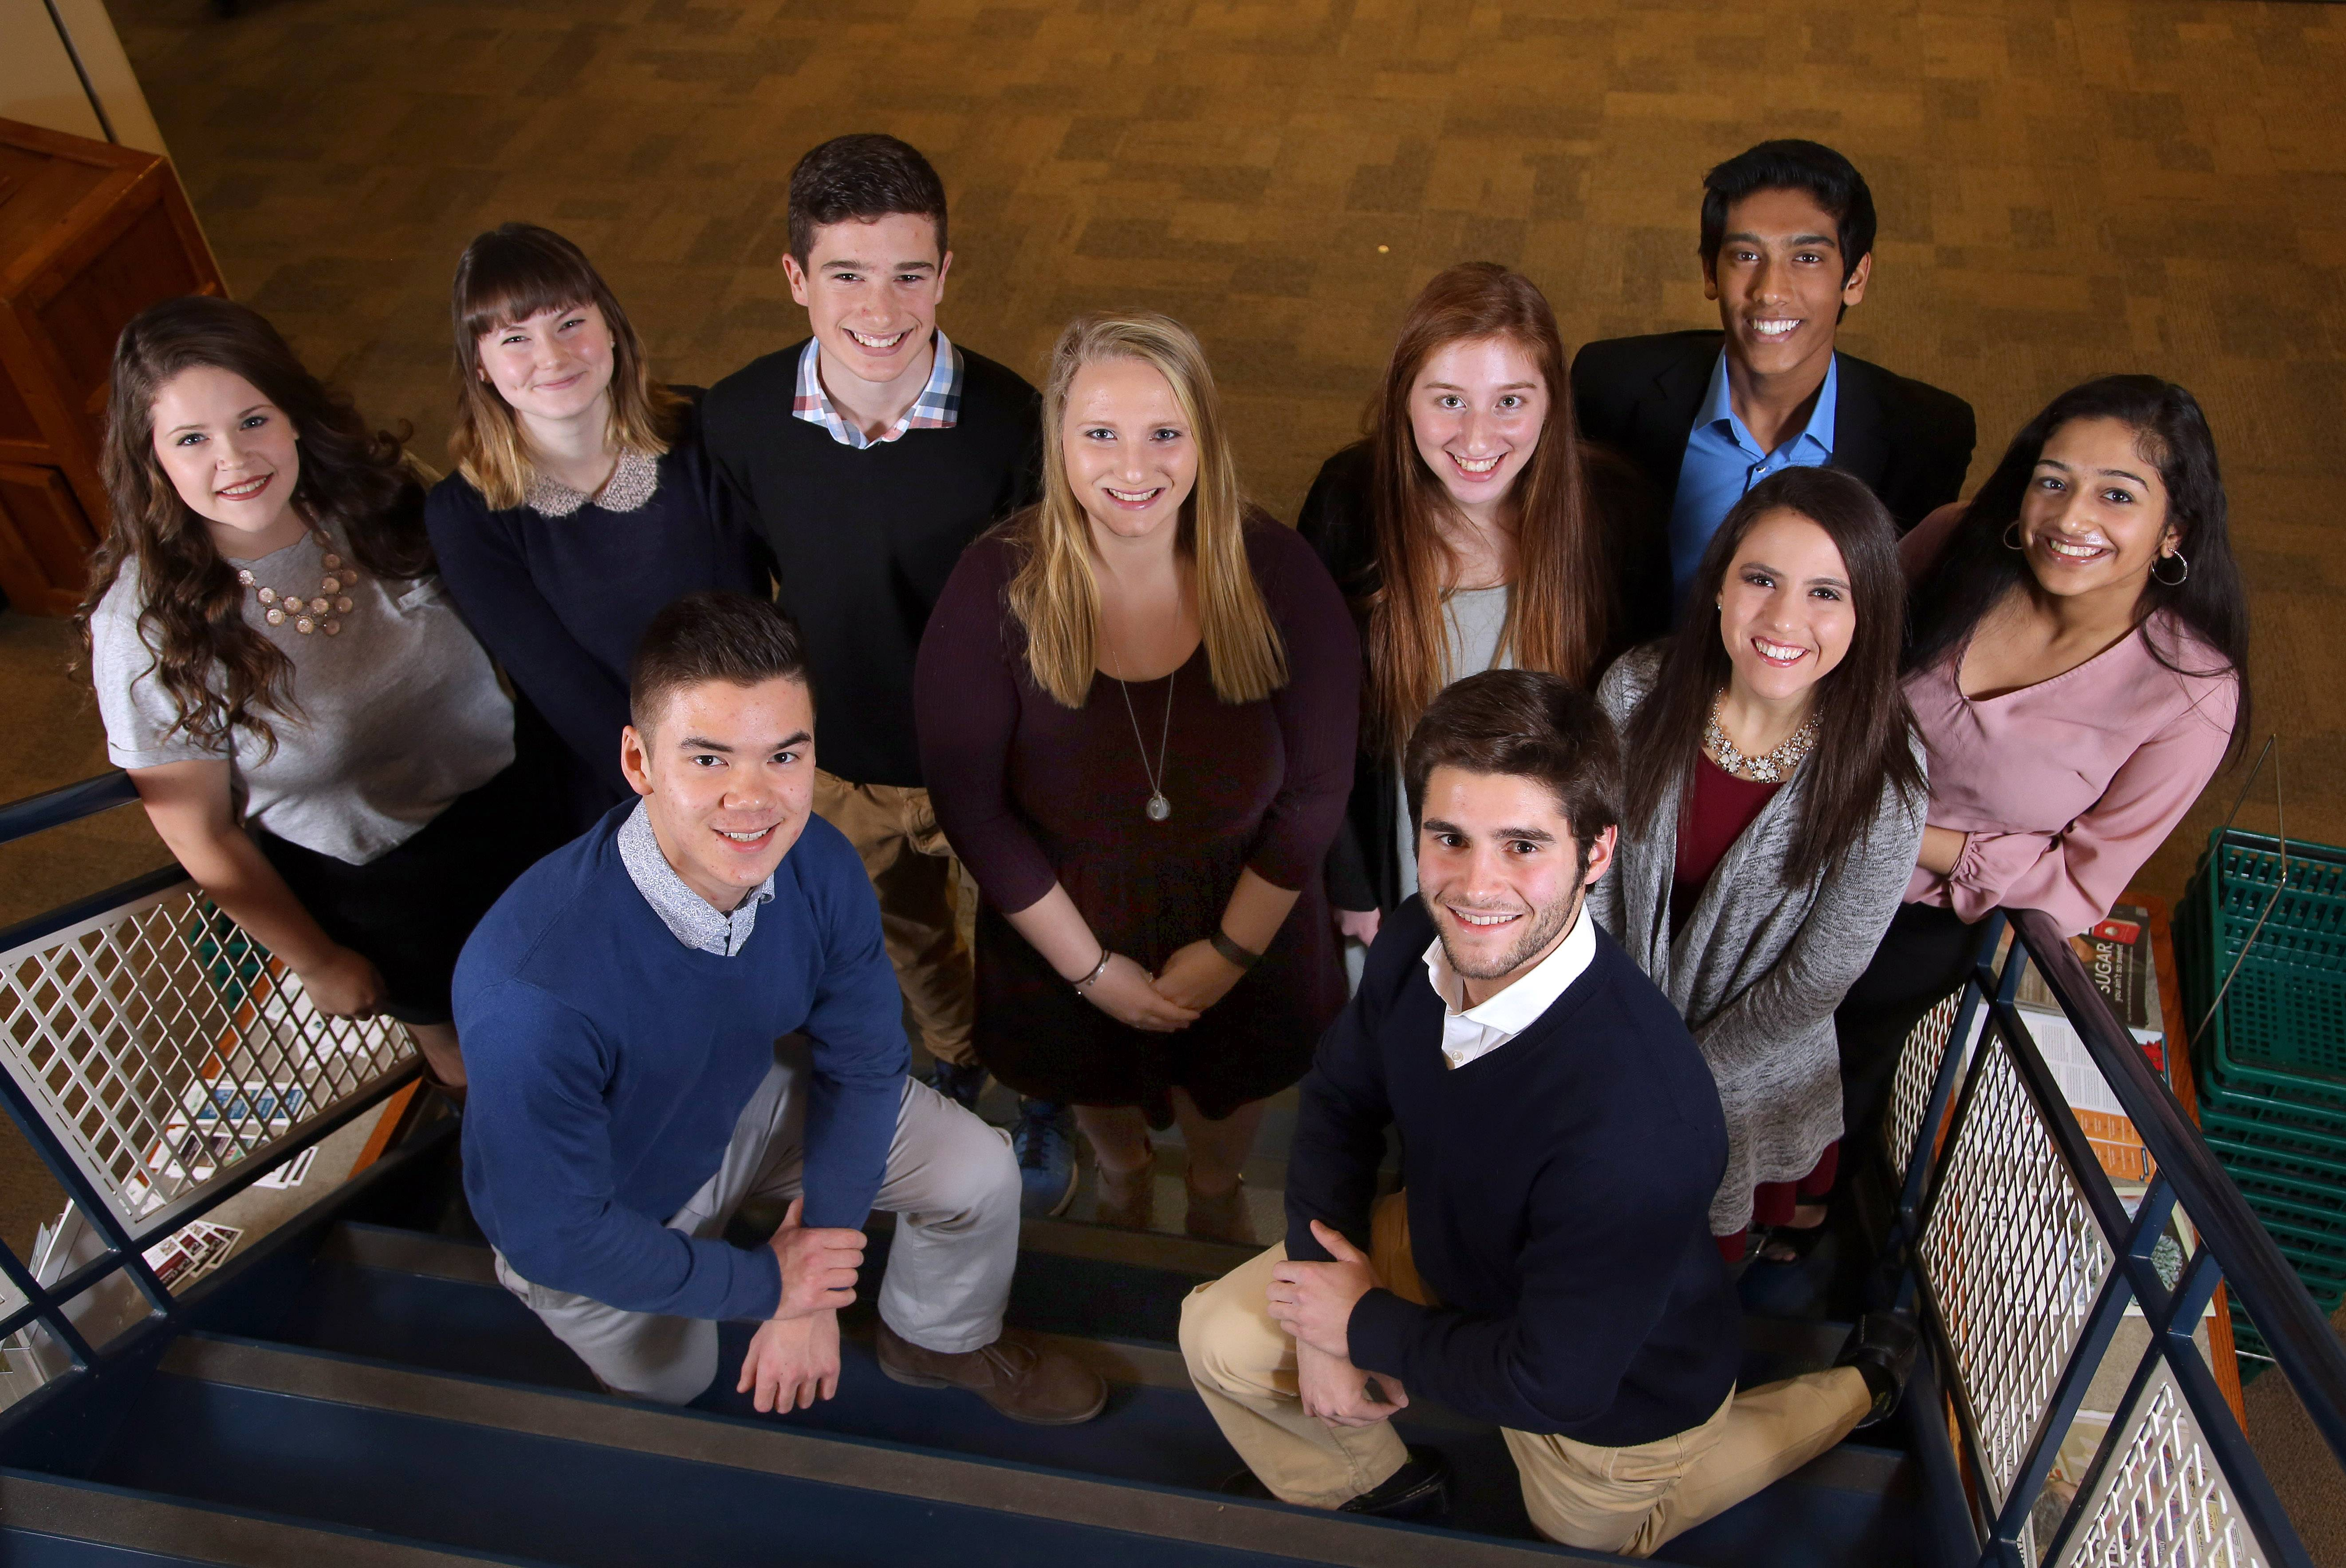 The Daily Herald's Lake County Leadership Team includes, kneeling from left, Nathan Metz, Warren Township High School; Mario Giannini, Grayslake Central High School; and standing from left, Ashley Schenk, Round Lake High School; Nikol Safronova, Adlai E. Stevenson High School; Jack Gelinas, Lake Zurich High School; Maddie Johnson, Lakes Community High School; Gracie Bouker, Antioch Community High School; Aakash Setty, Vernon Hills High School; Adriana Feijoo, Mundelein High School; and Aparajitha Adiraju, Vernon Hills High School.